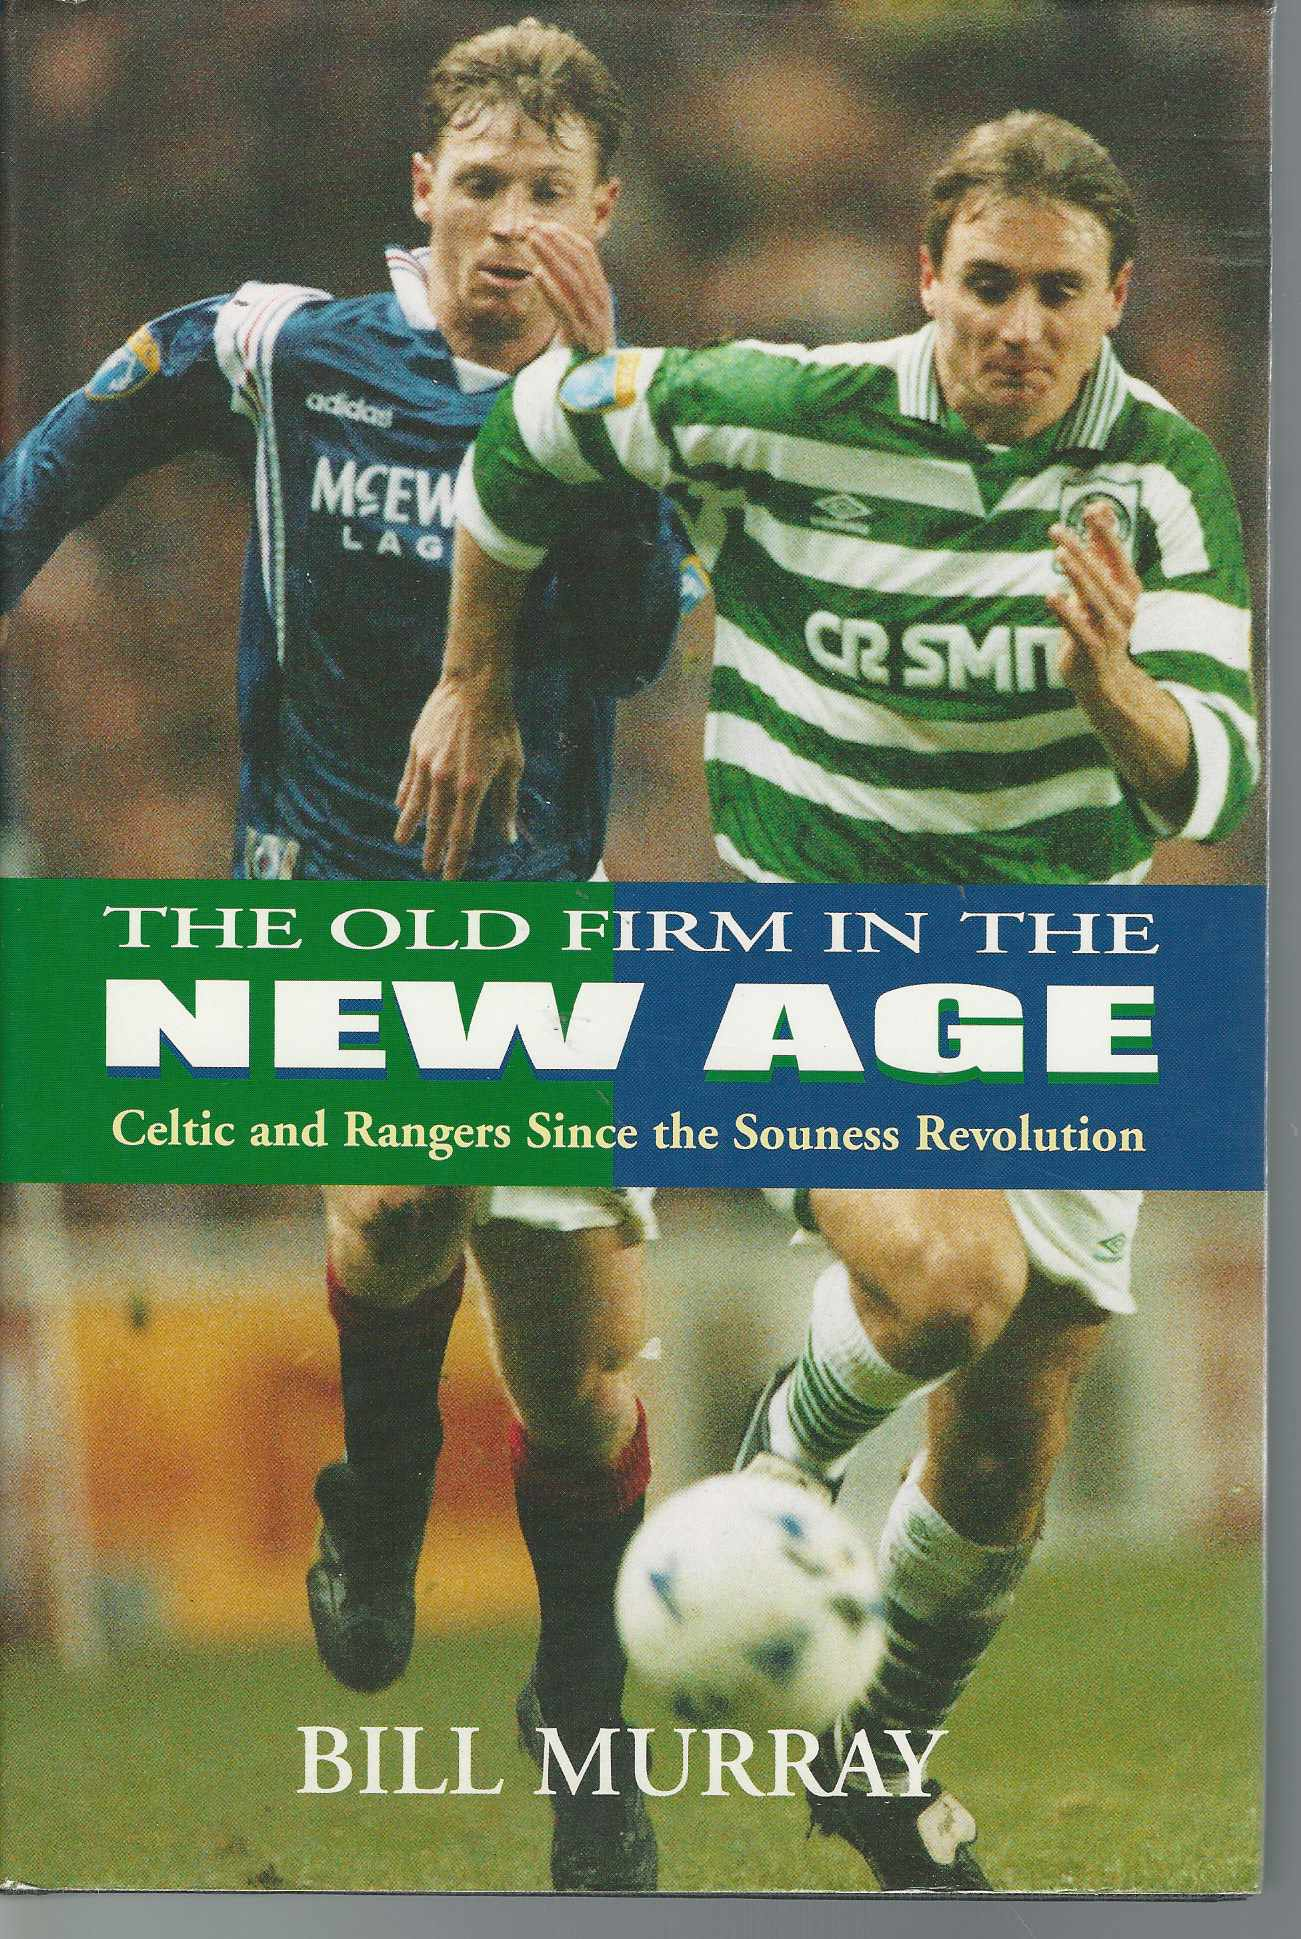 The Old Firm In The New Age